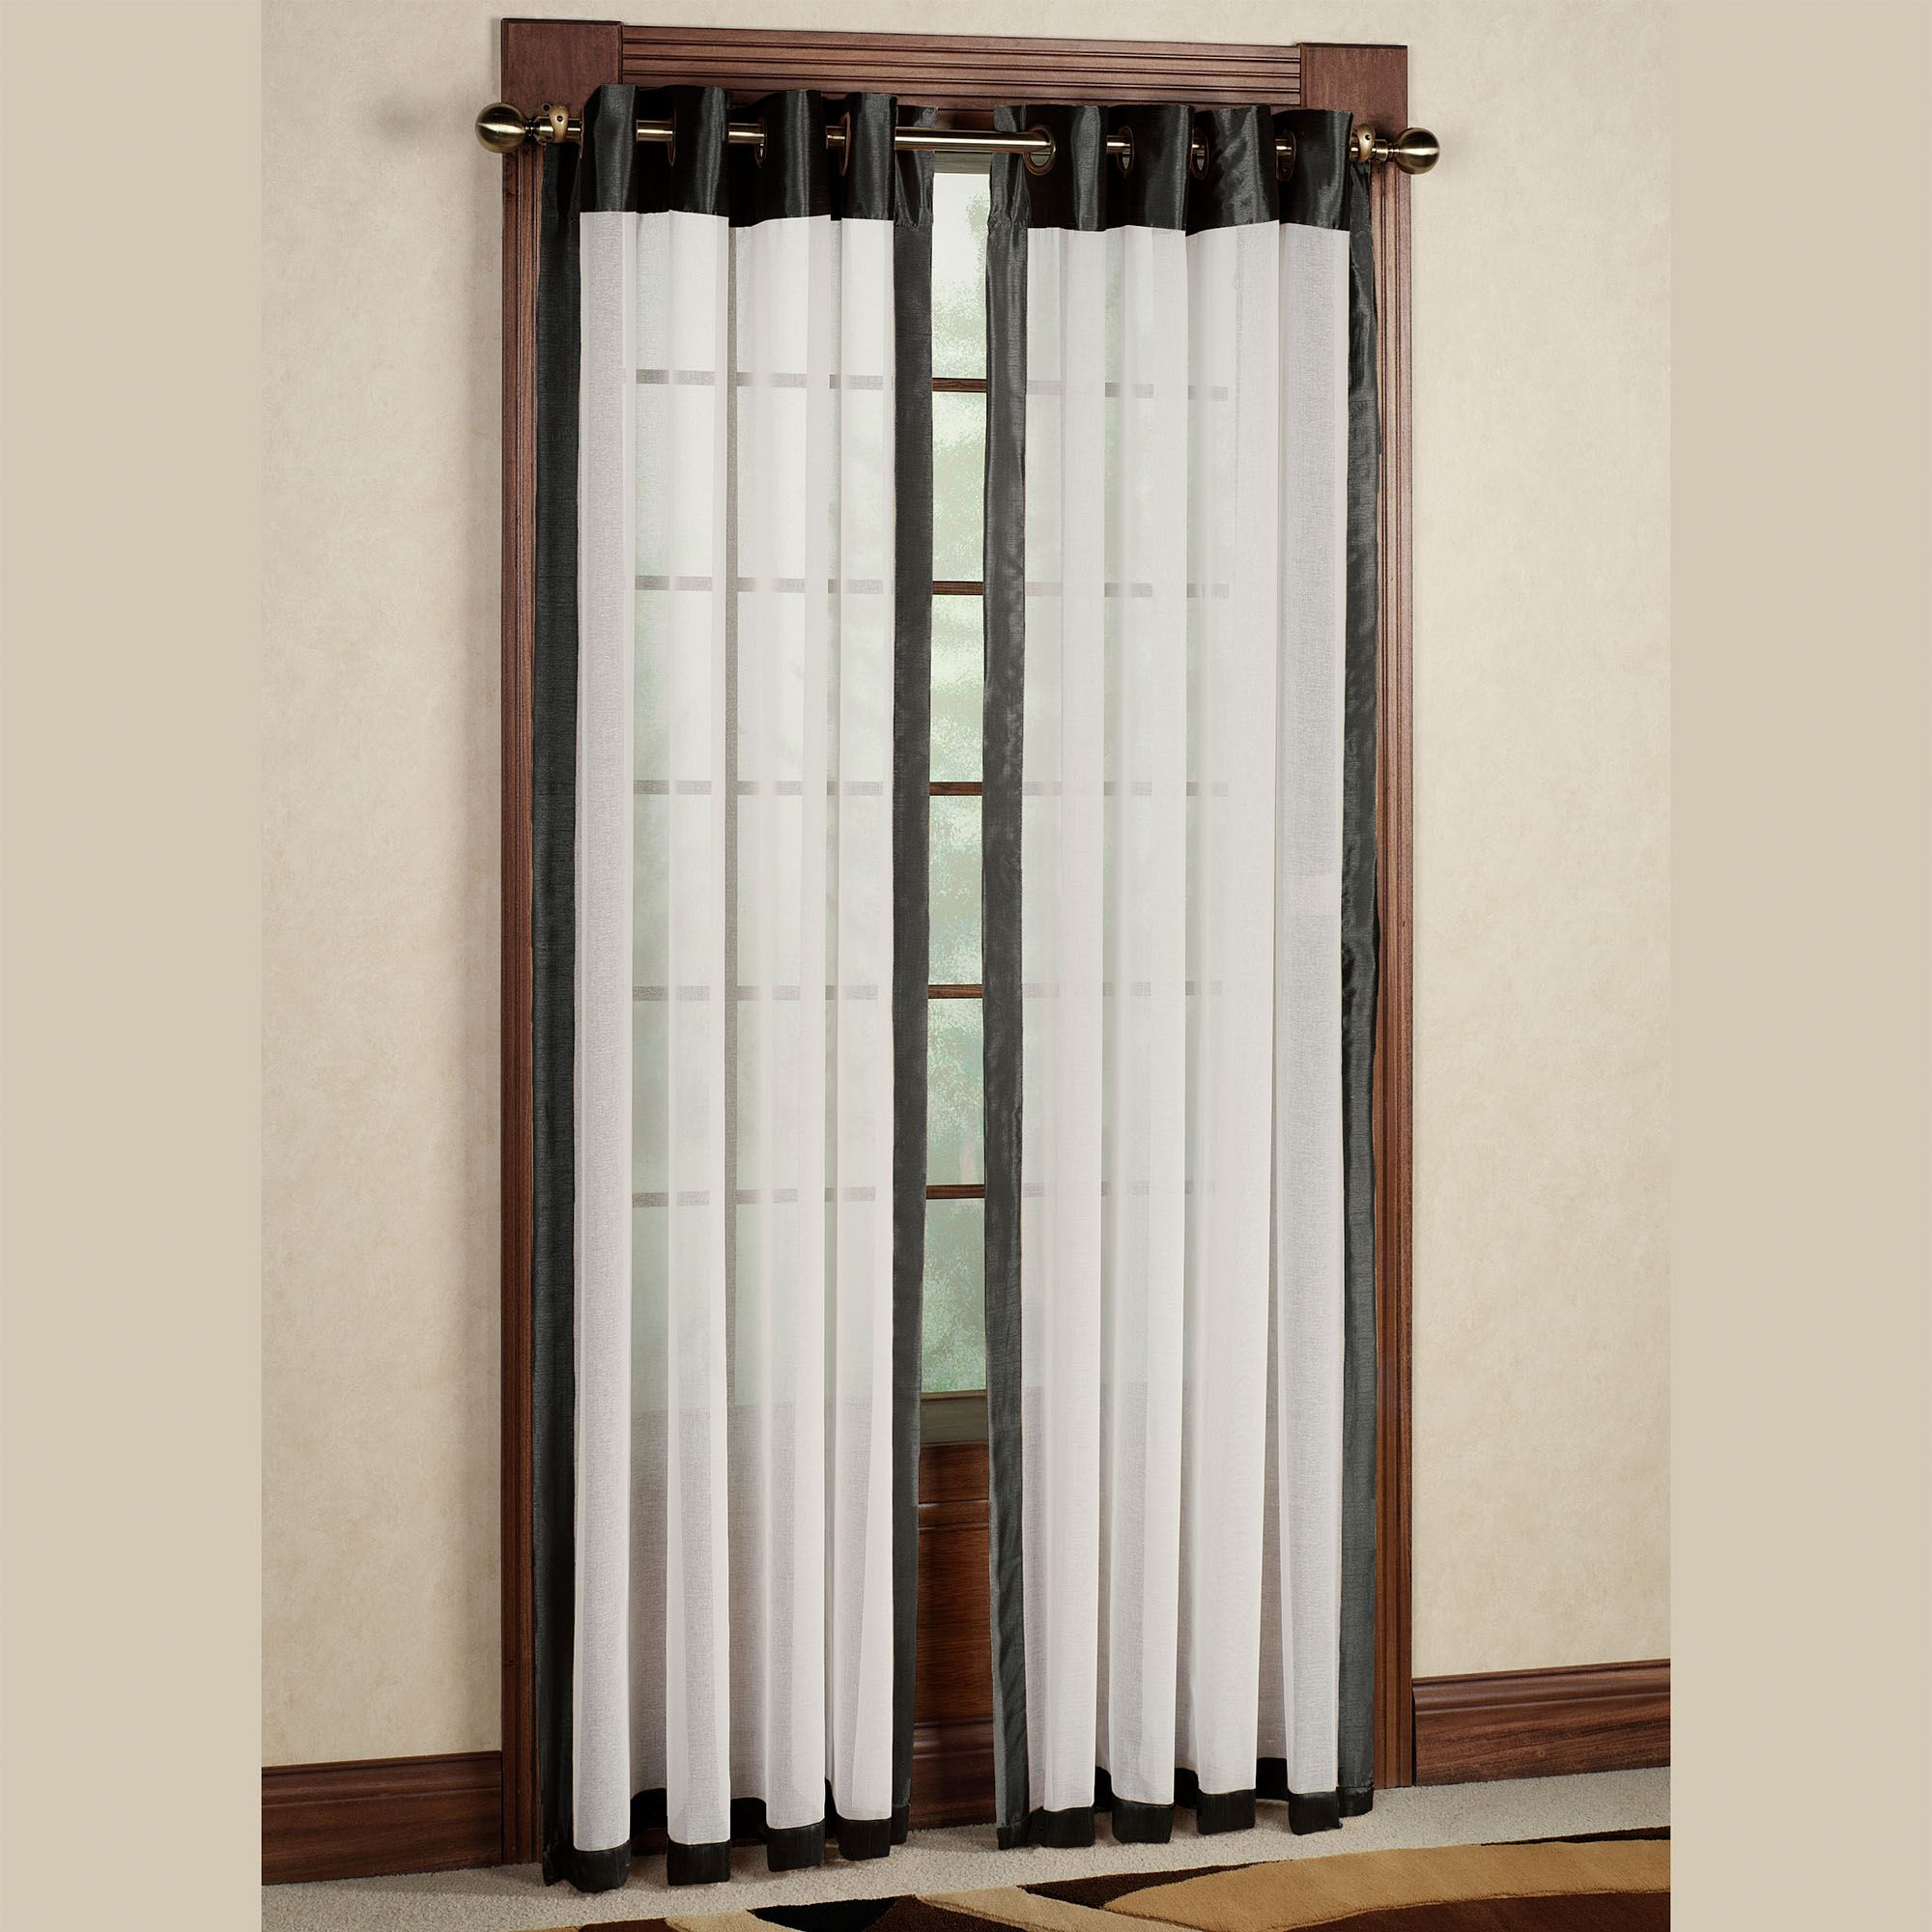 categories canada p the decor window home inch drapes downtown panel and treatments grommet blackout x en depot curtains